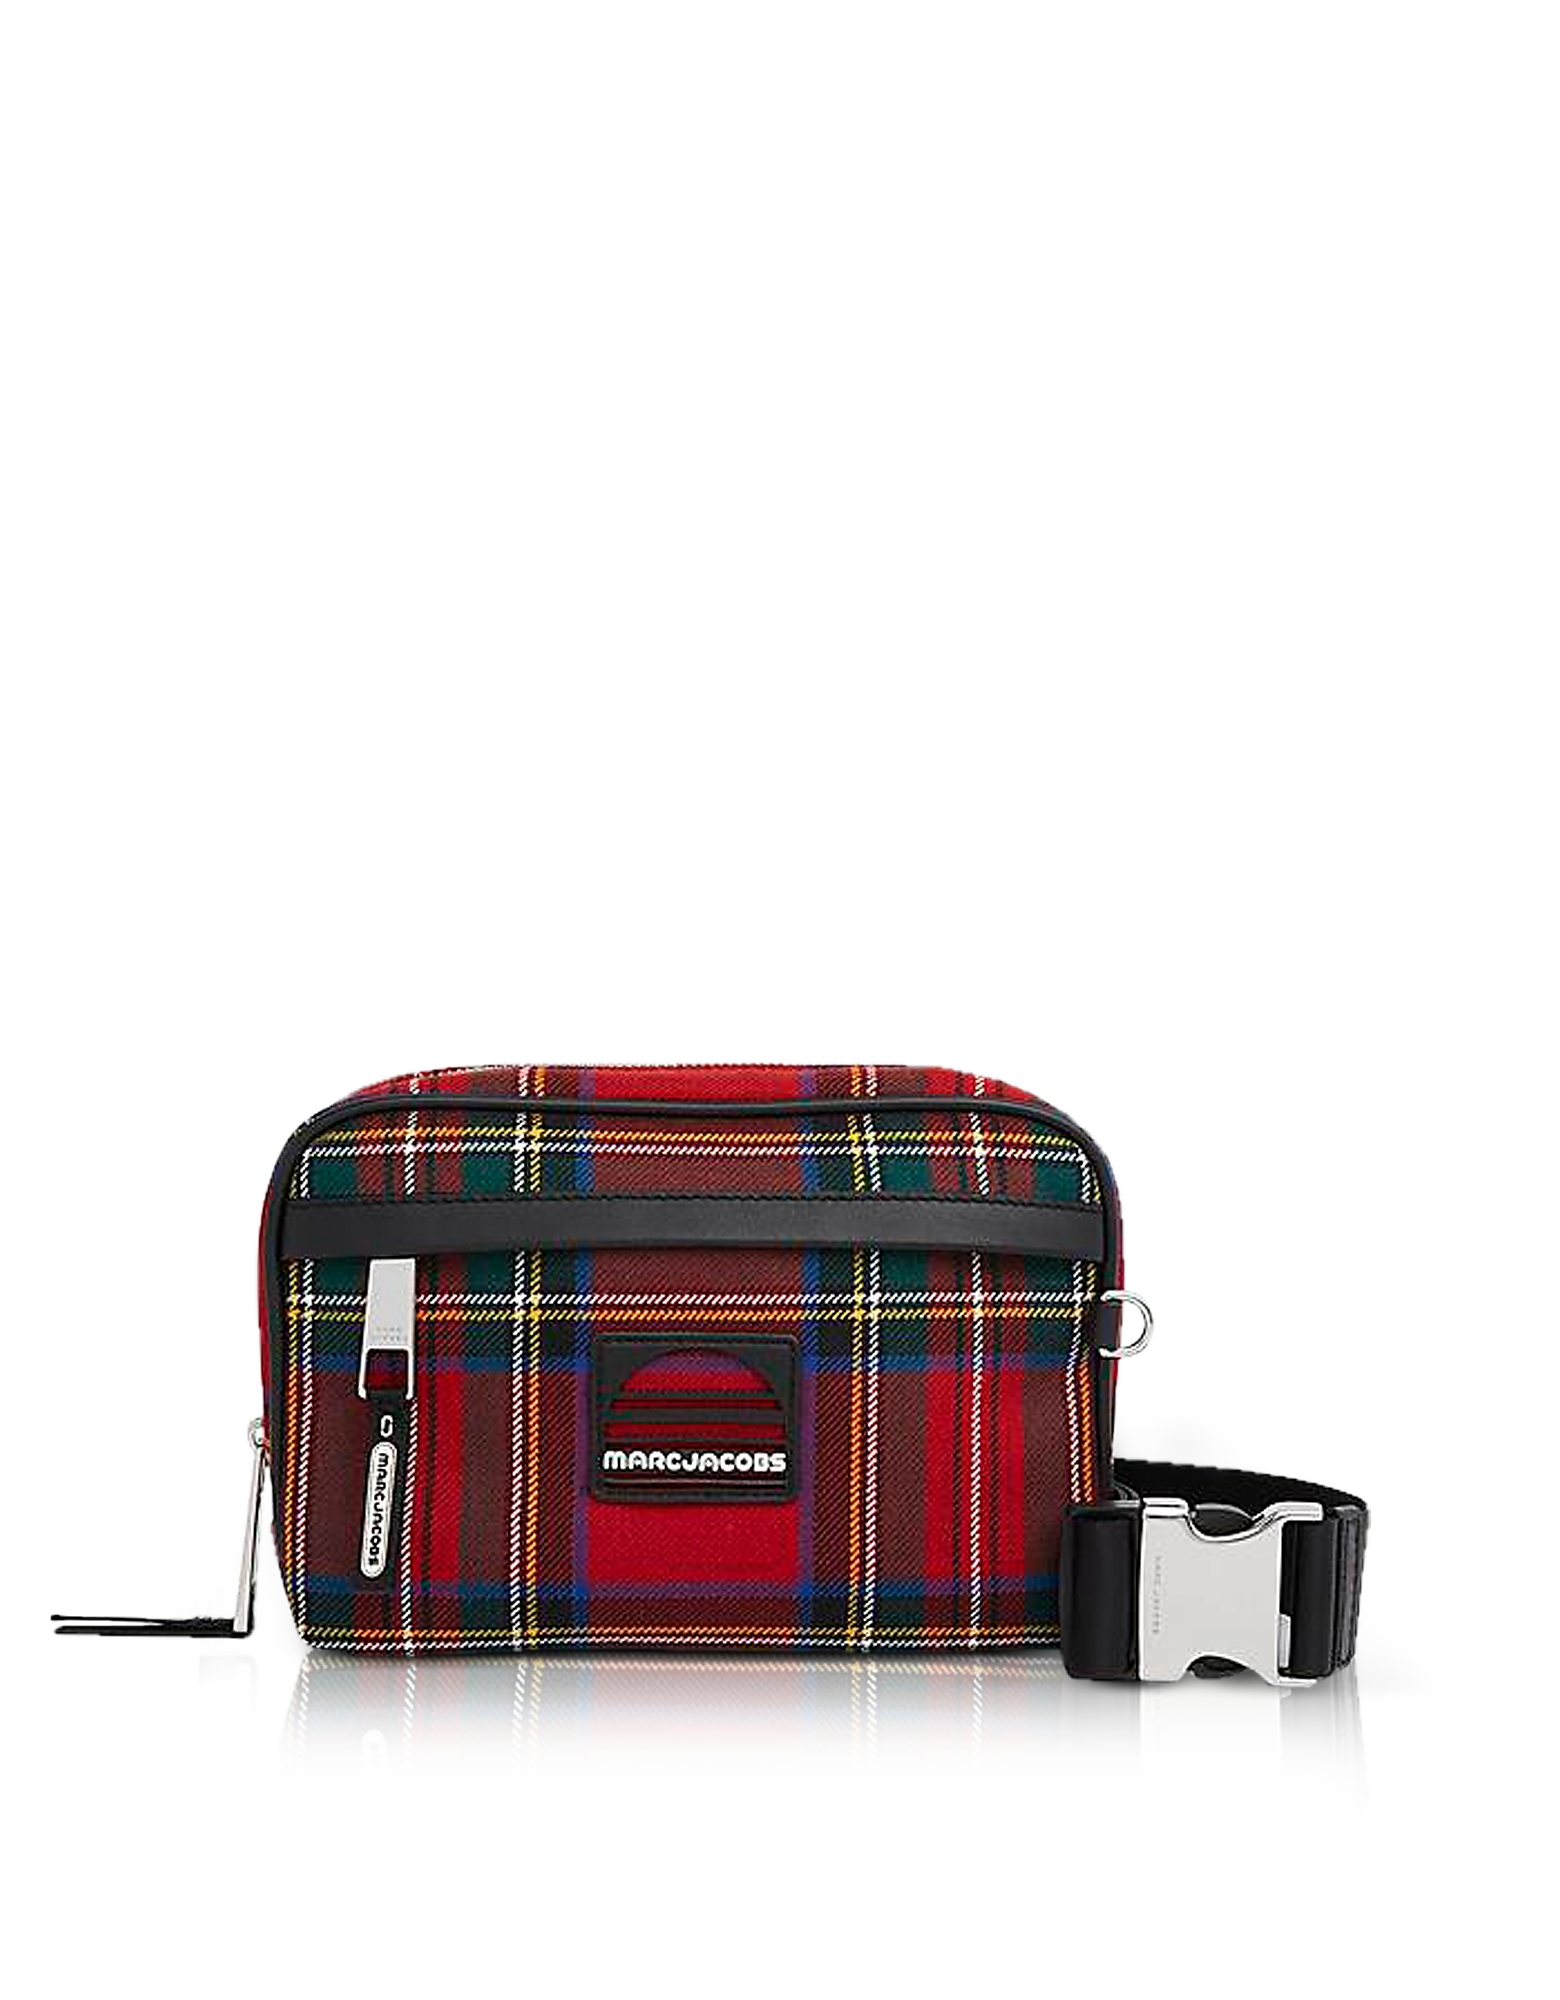 Red Tartan Sport Belt Bag. Tartan Sport Belt Bag crafted in printed fabric and leather trim, takes inspiration from sports bags with a ripping punk at